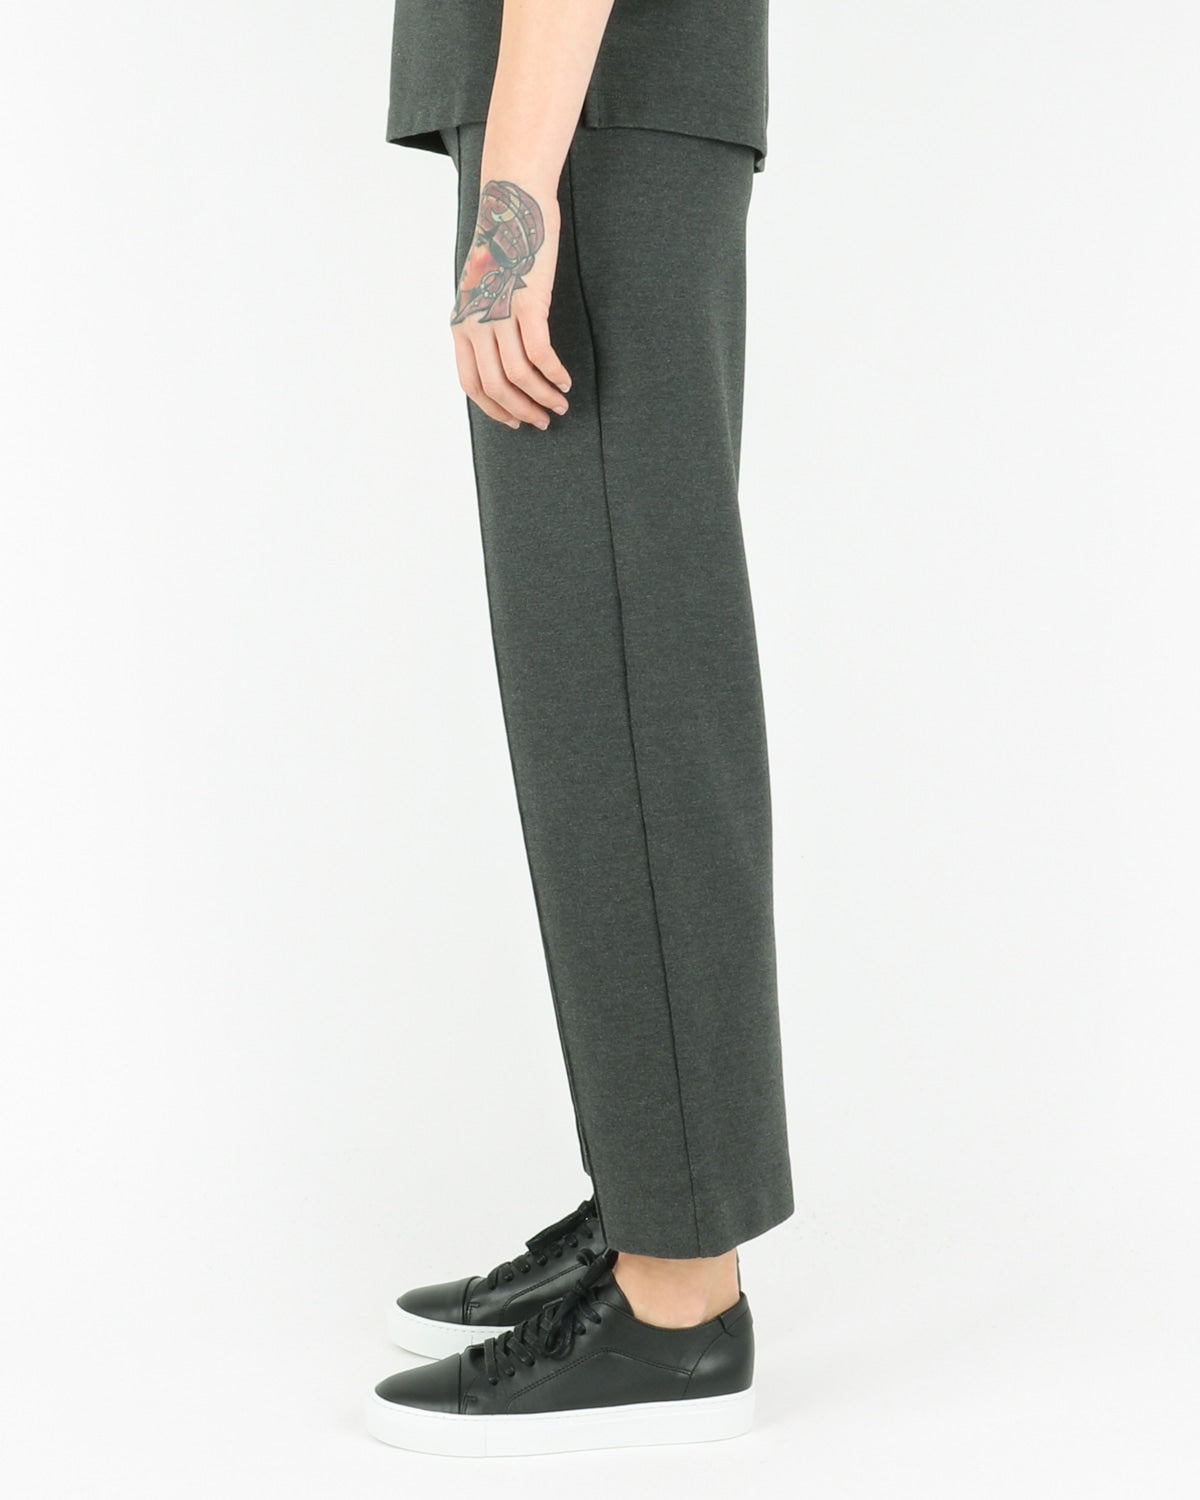 norse projects_elly firm jersey pants_charcoal melange_view_3_3